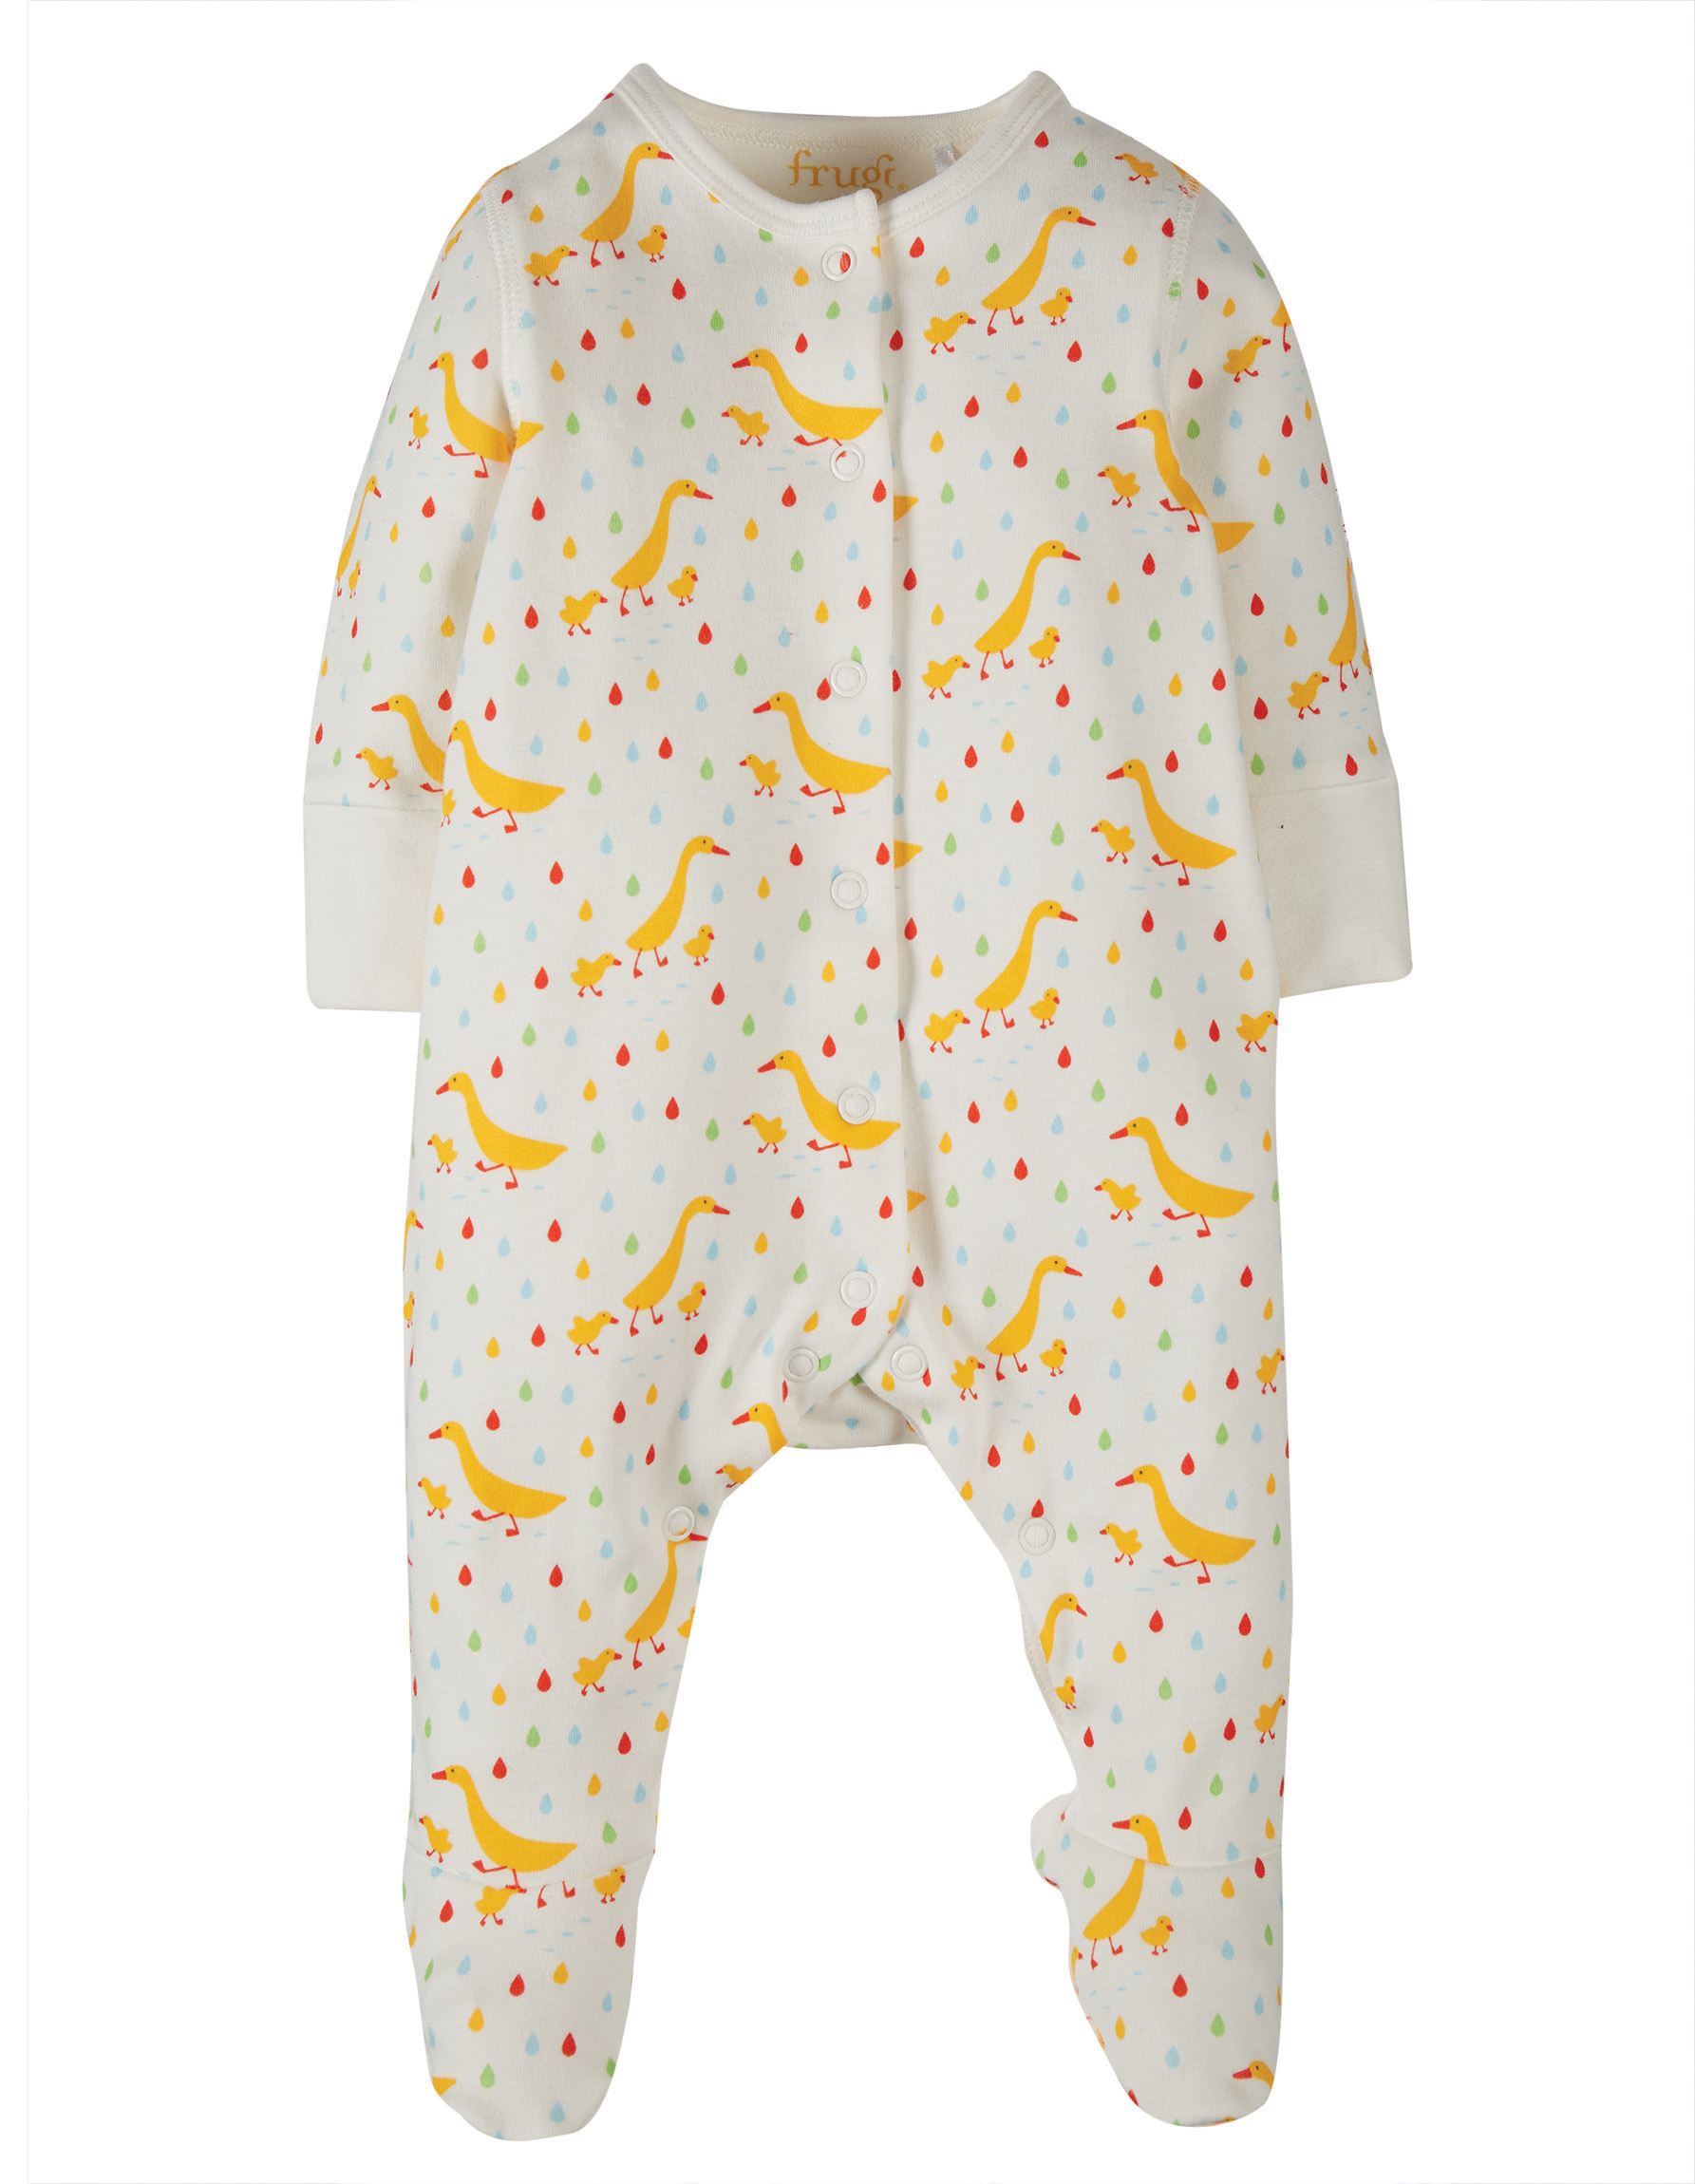 Frugi Lovely Little Babygrow, Soft White Runner Ducks